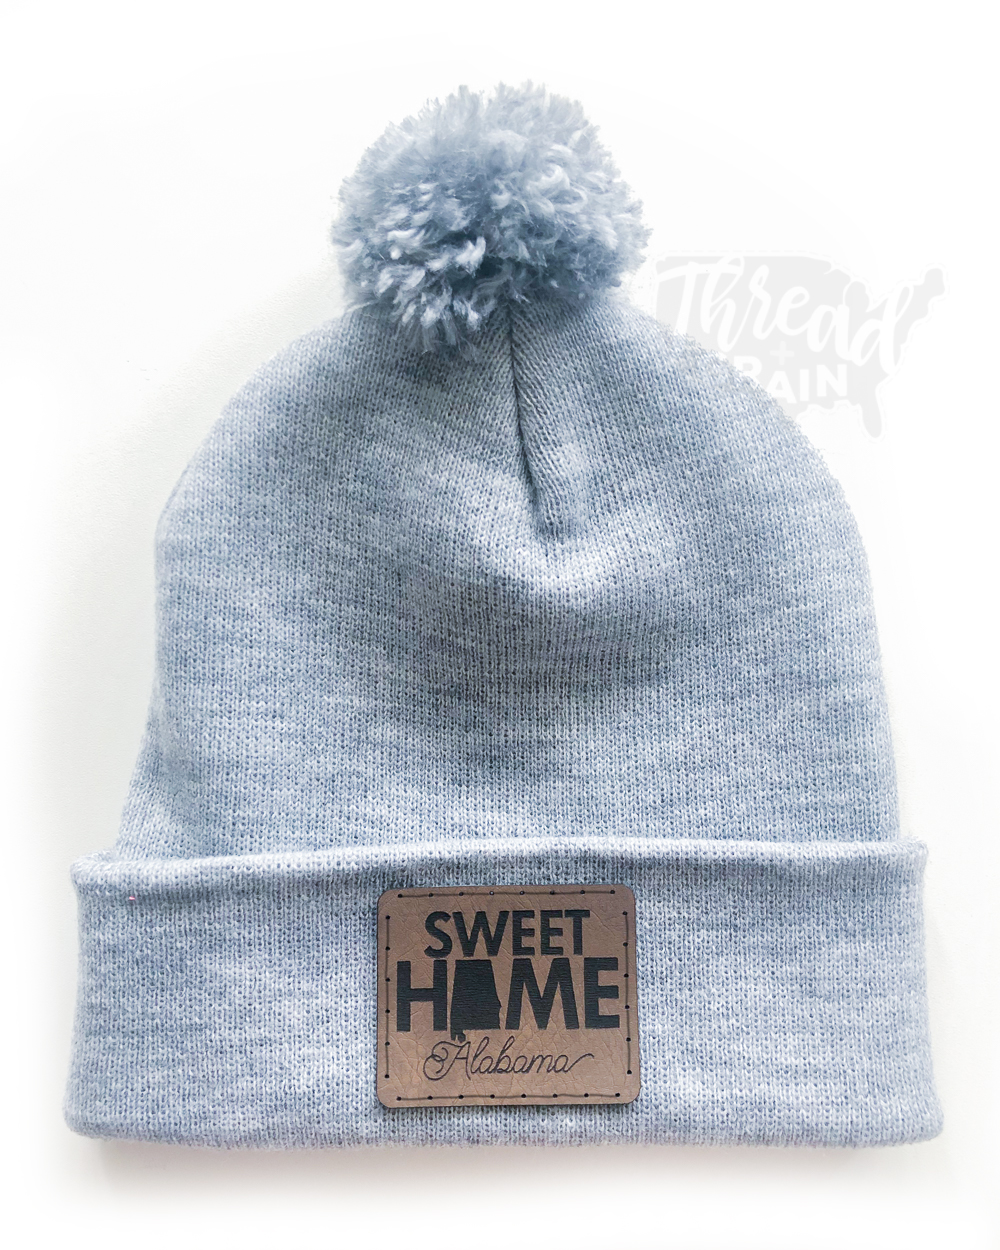 Alabama :: Sweet Home PATCHED HAT